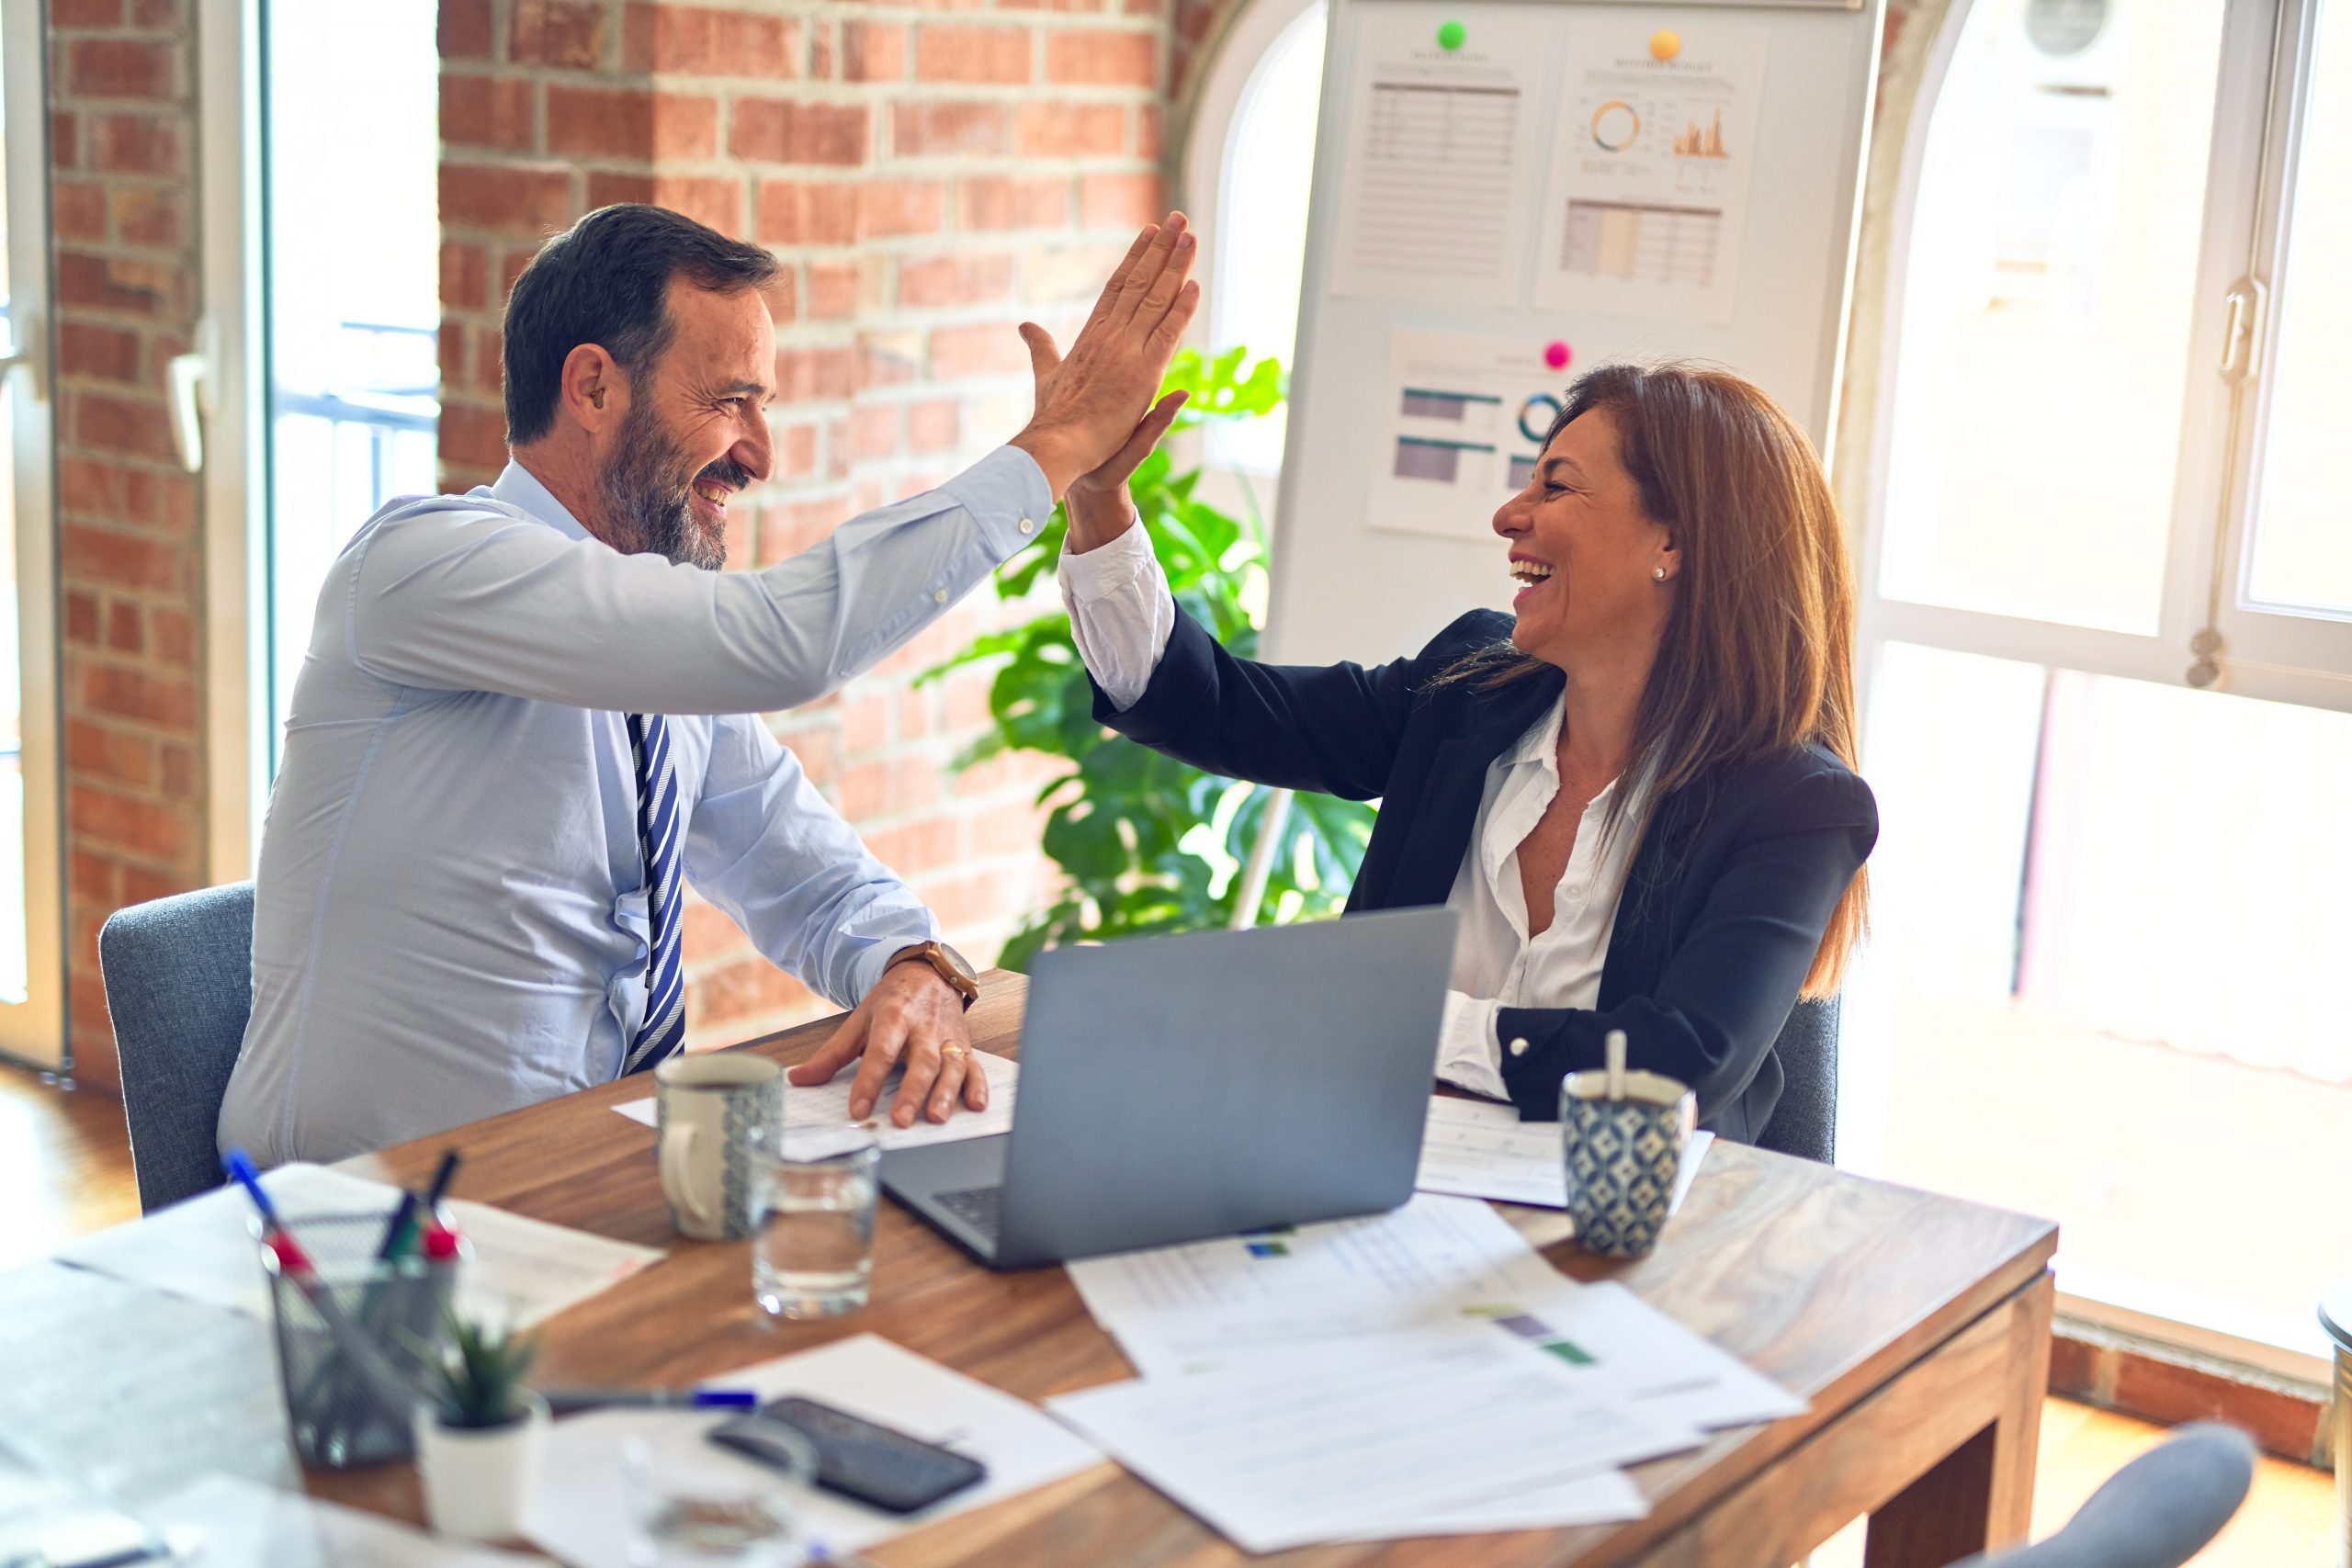 L&D Circles: Using innovation to engage employees